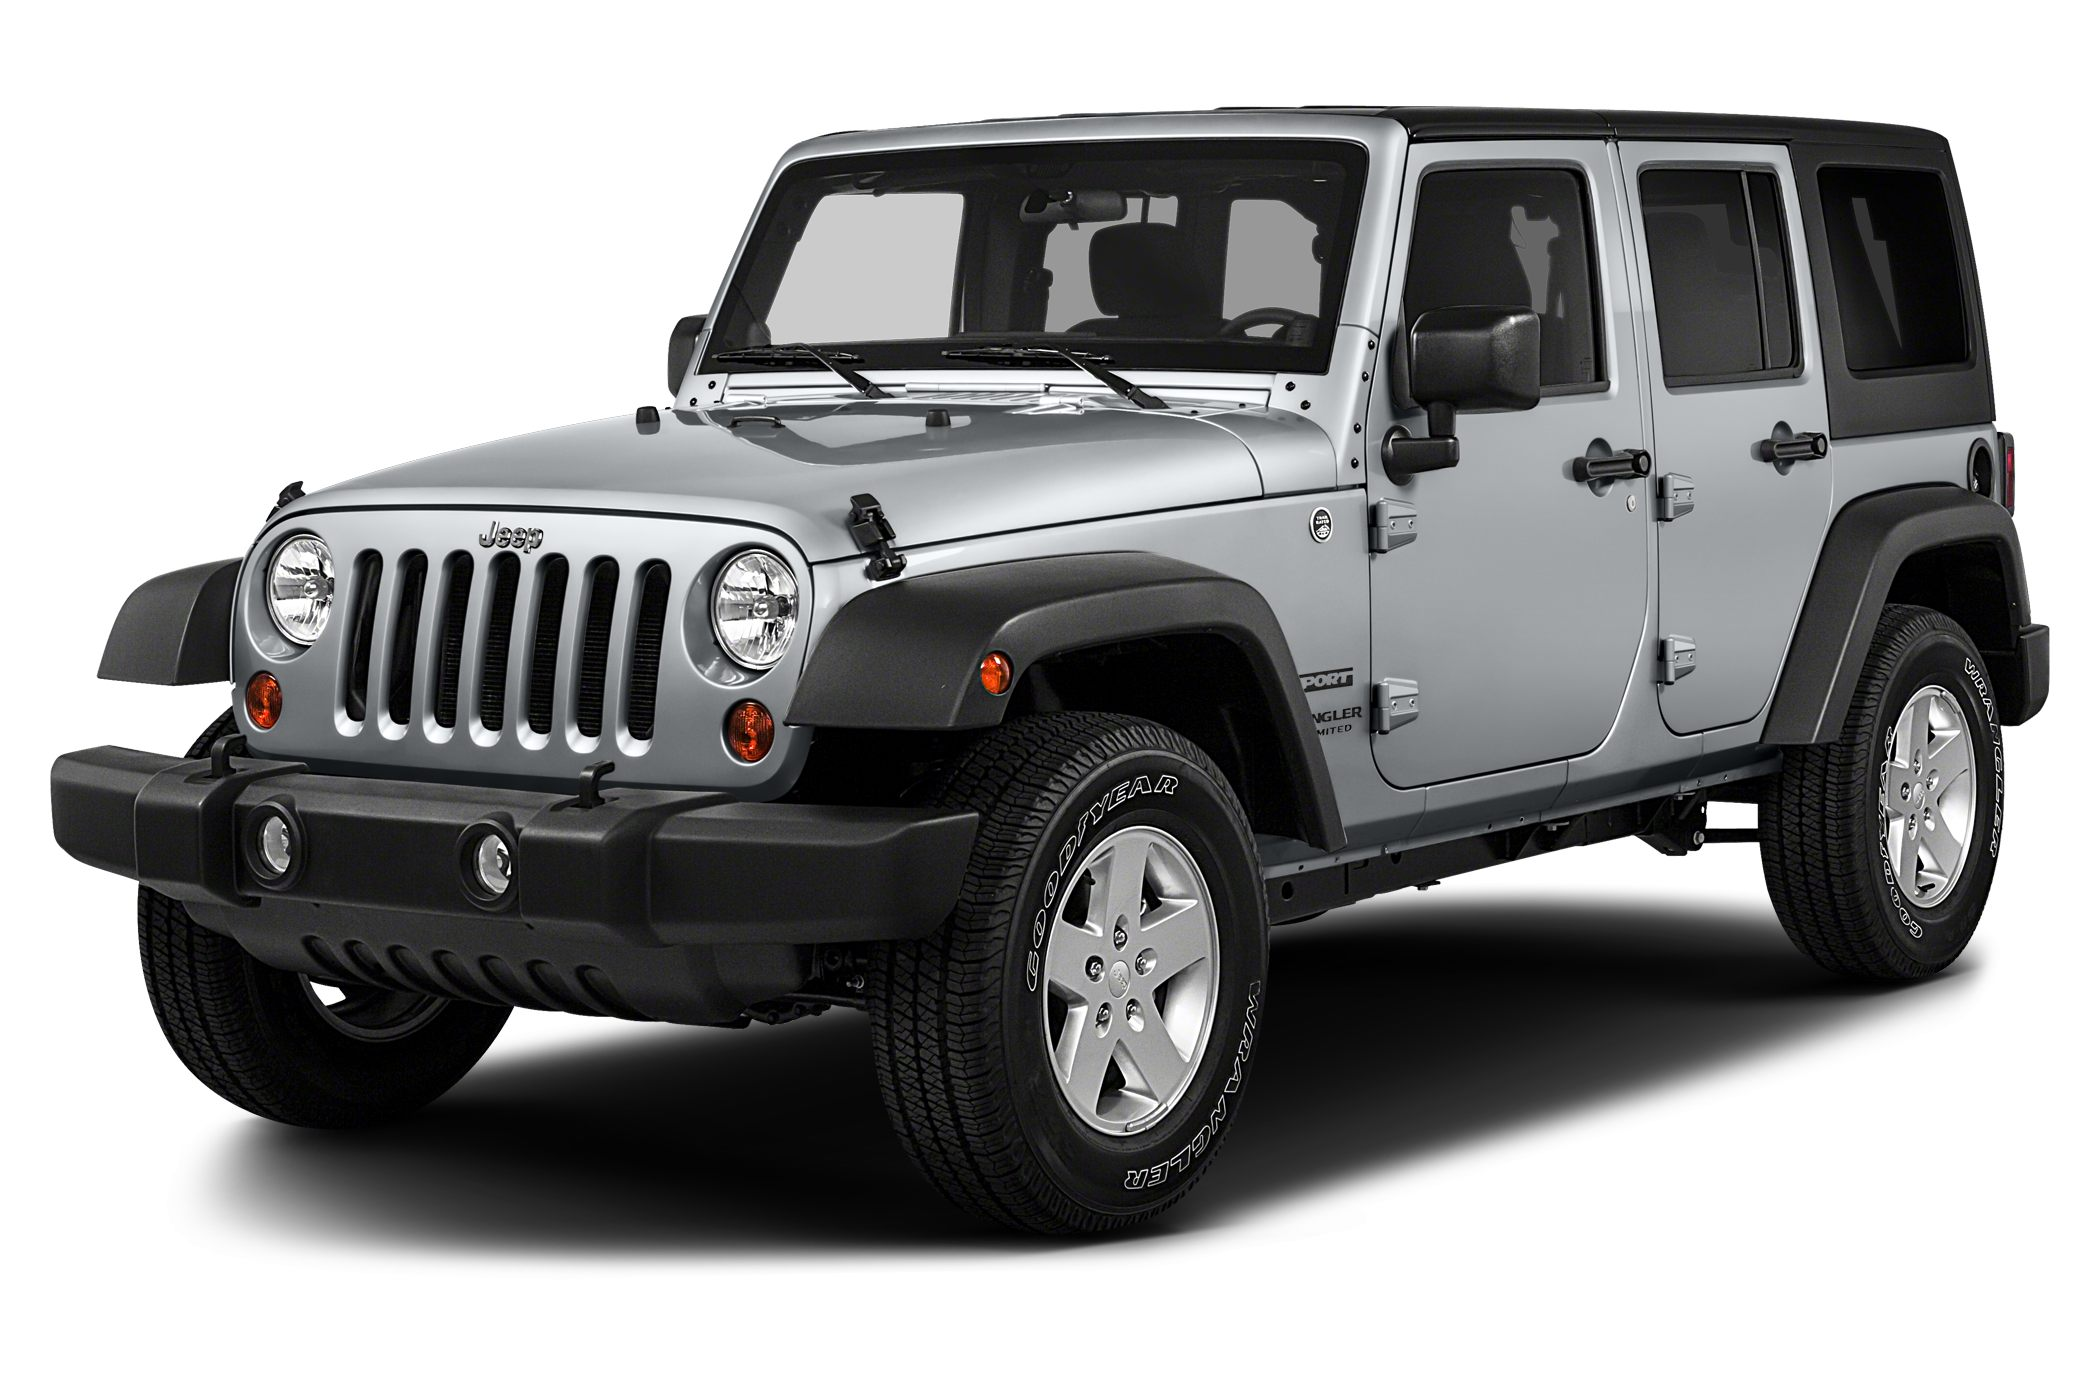 2017 Jeep Wrangler Unlimited Sport 4dr 4x4 Pricing and Options